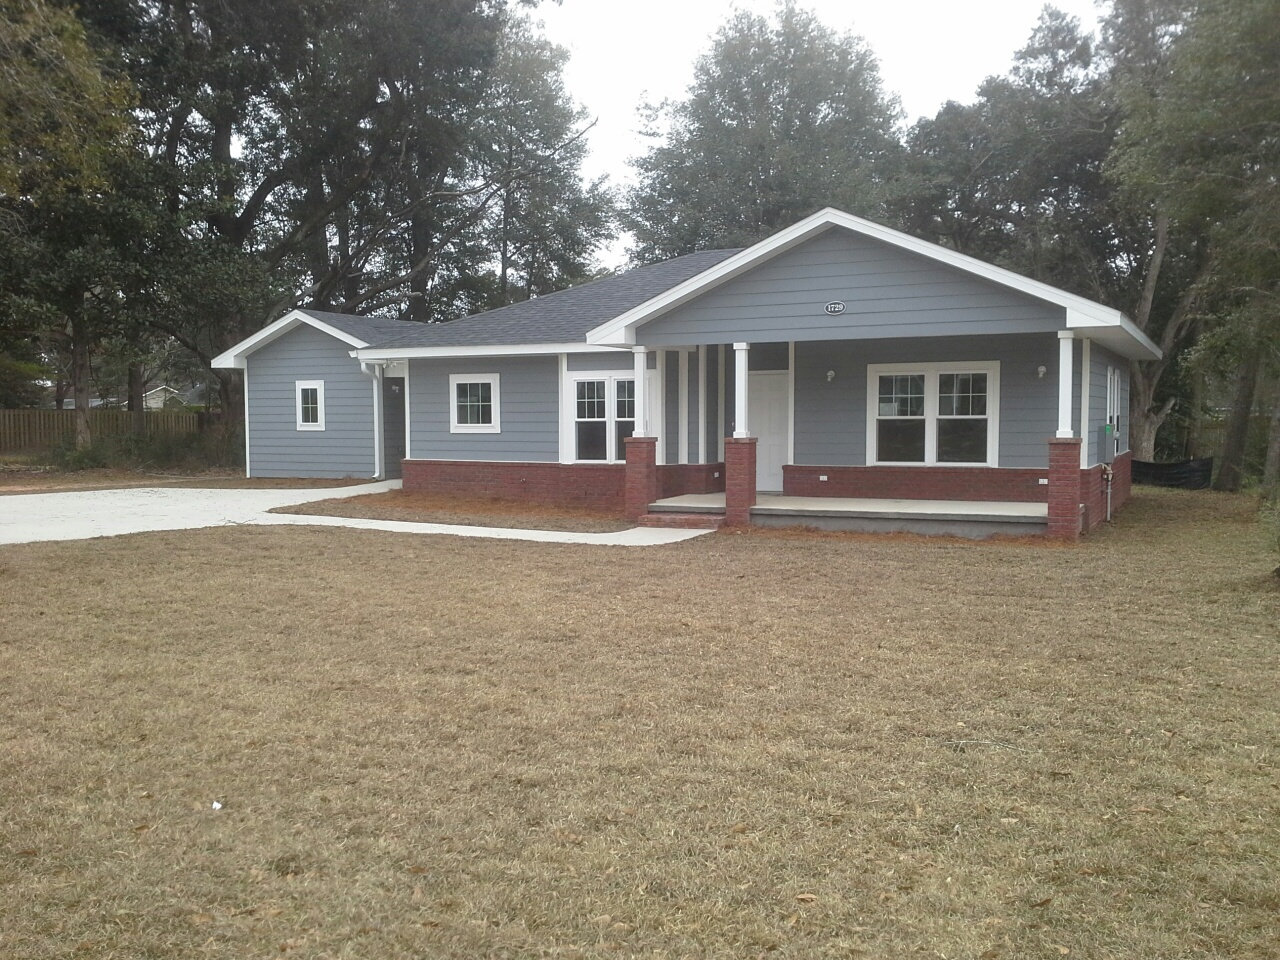 Home Inspection - New Purchase